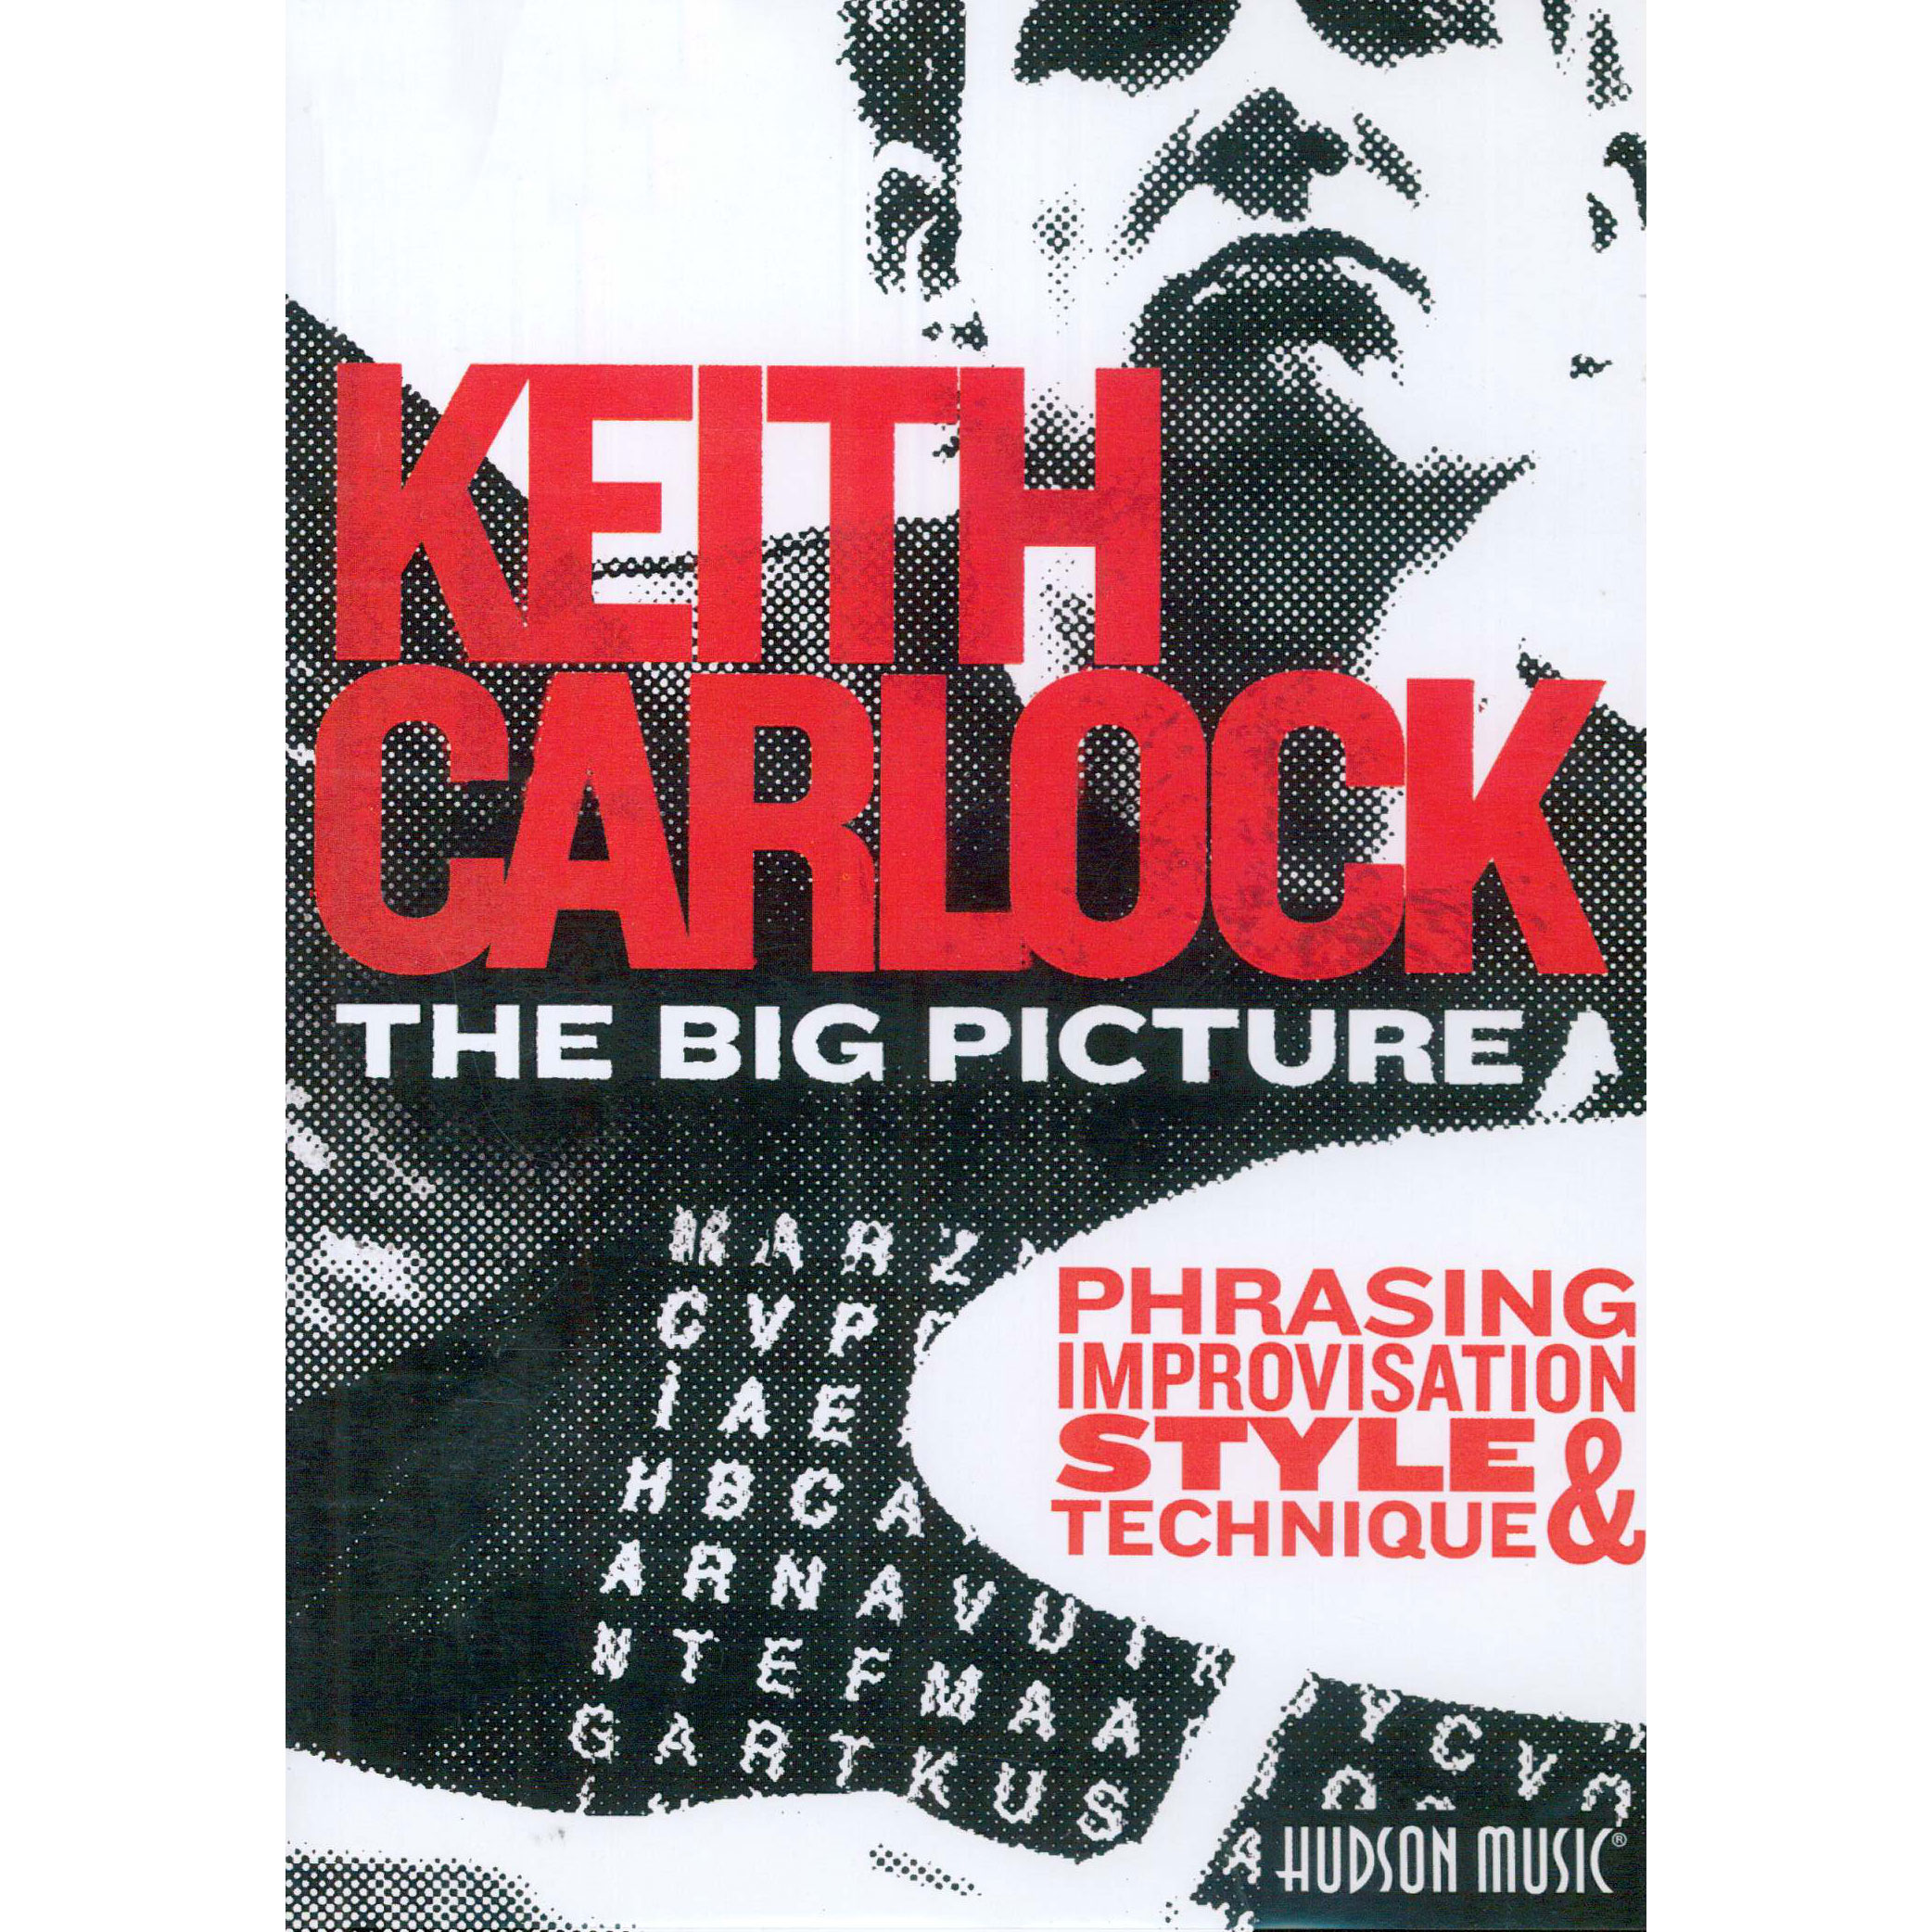 The Big Picture DVD - Keith Carlock